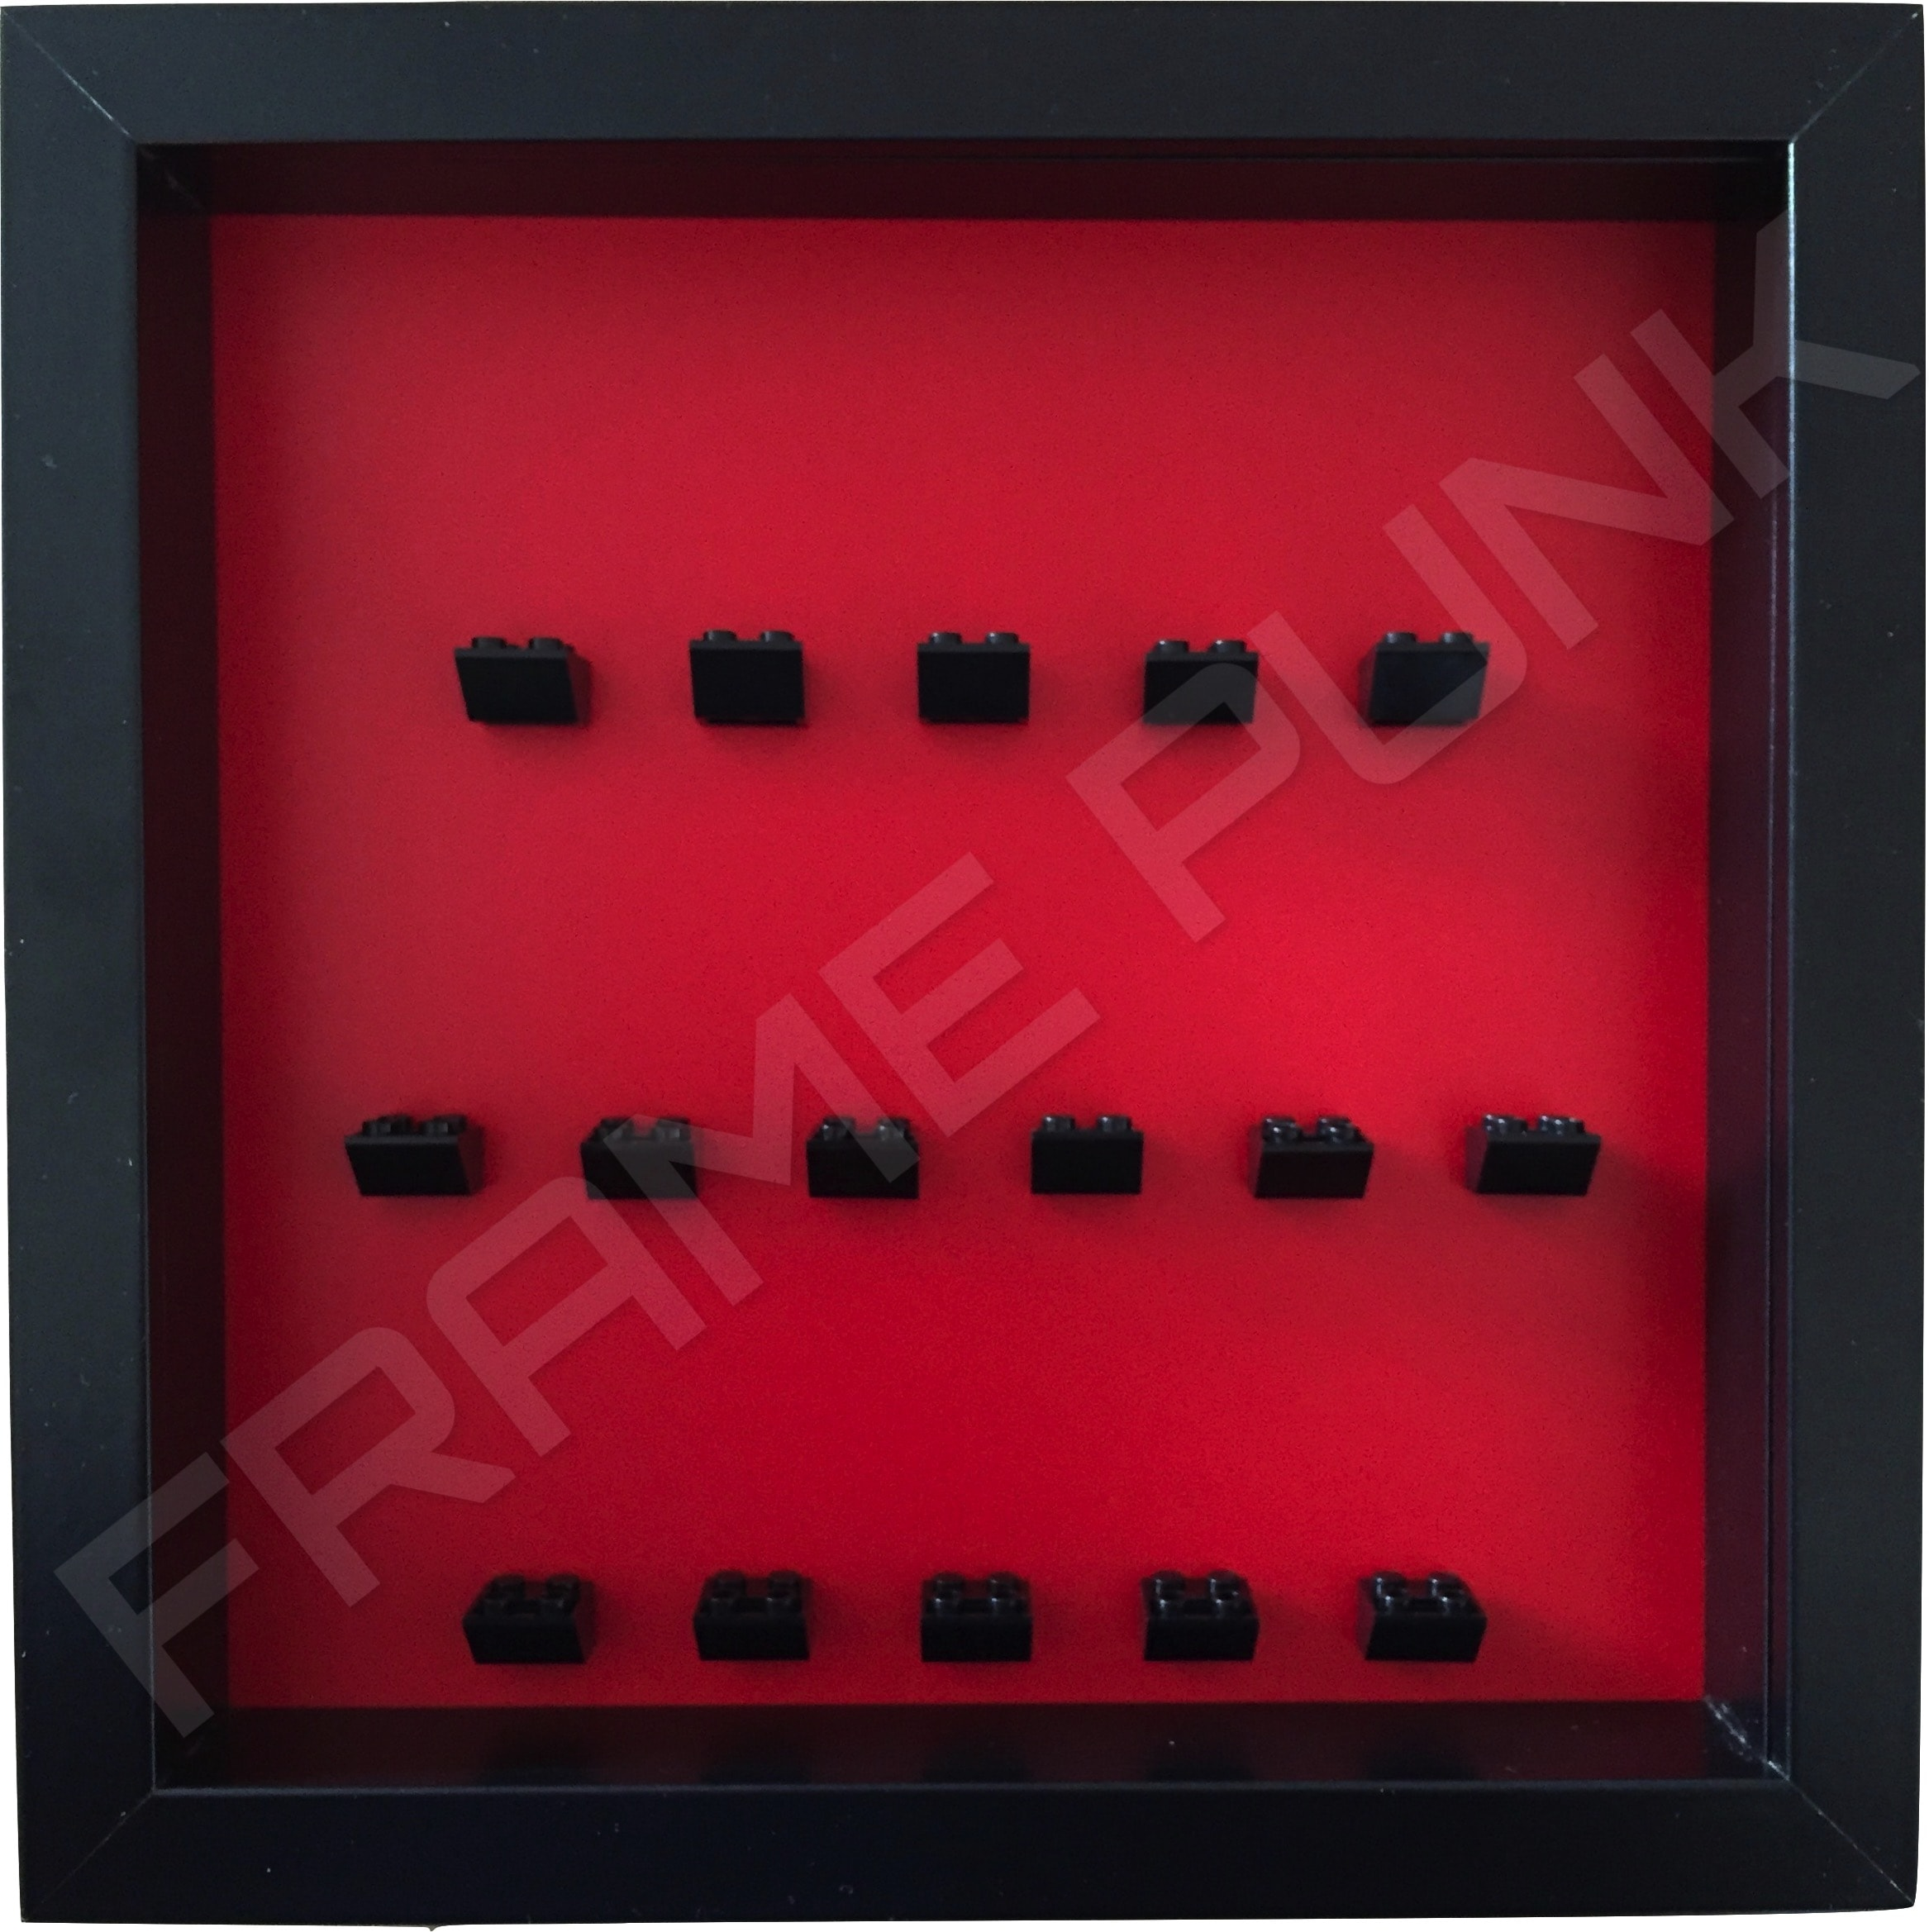 Black Lego brick formation on red background